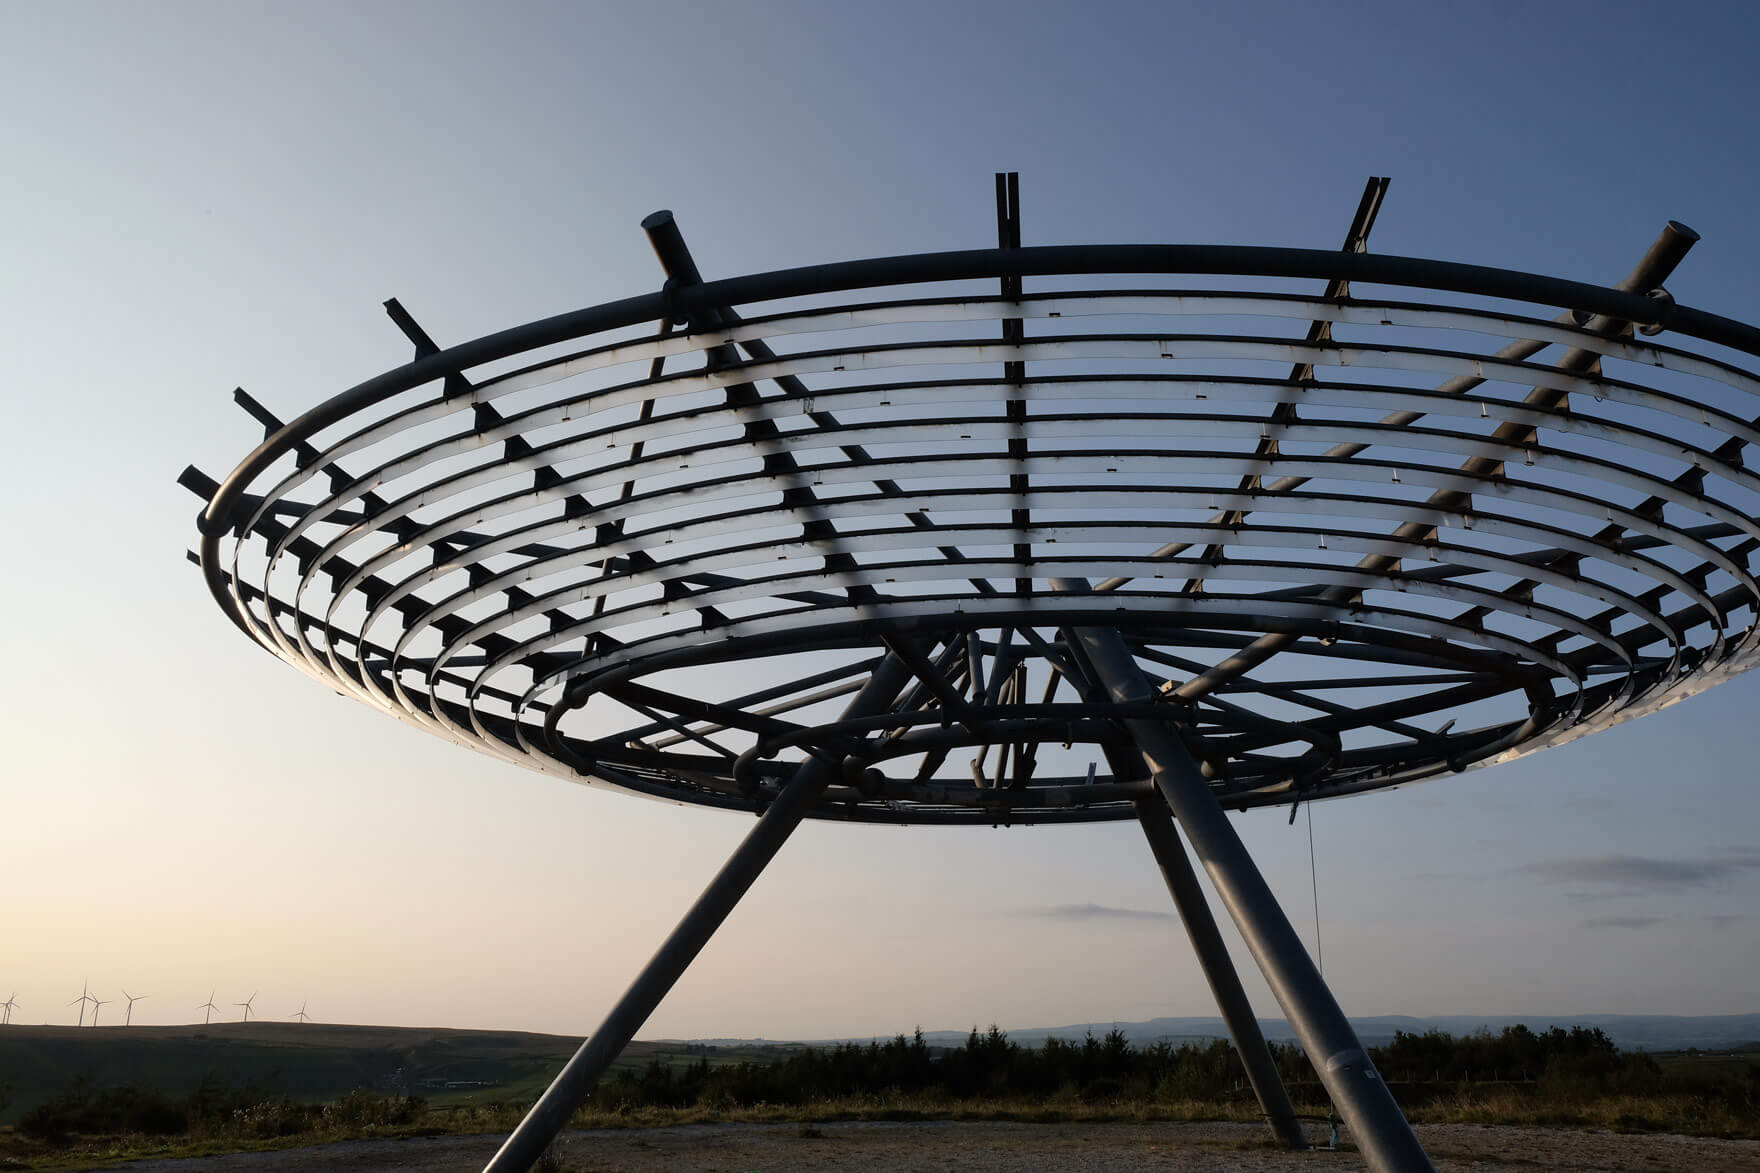 The Halo Panopticon in Haslingden, Rossendale